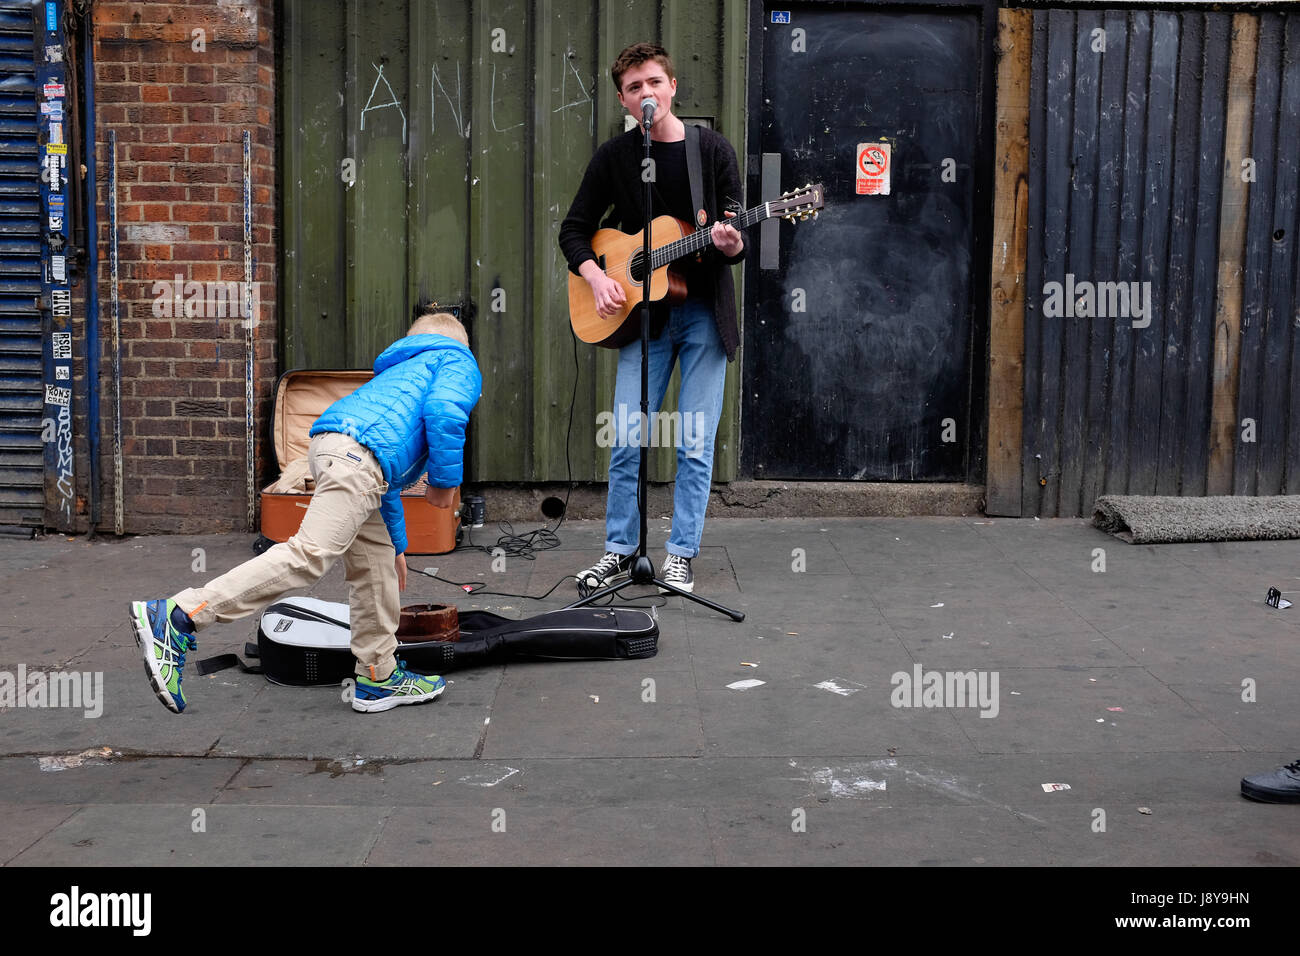 London Street Musician or 'Busker', playing guitar and singing on the streets of Camden Town, London. - Stock Image